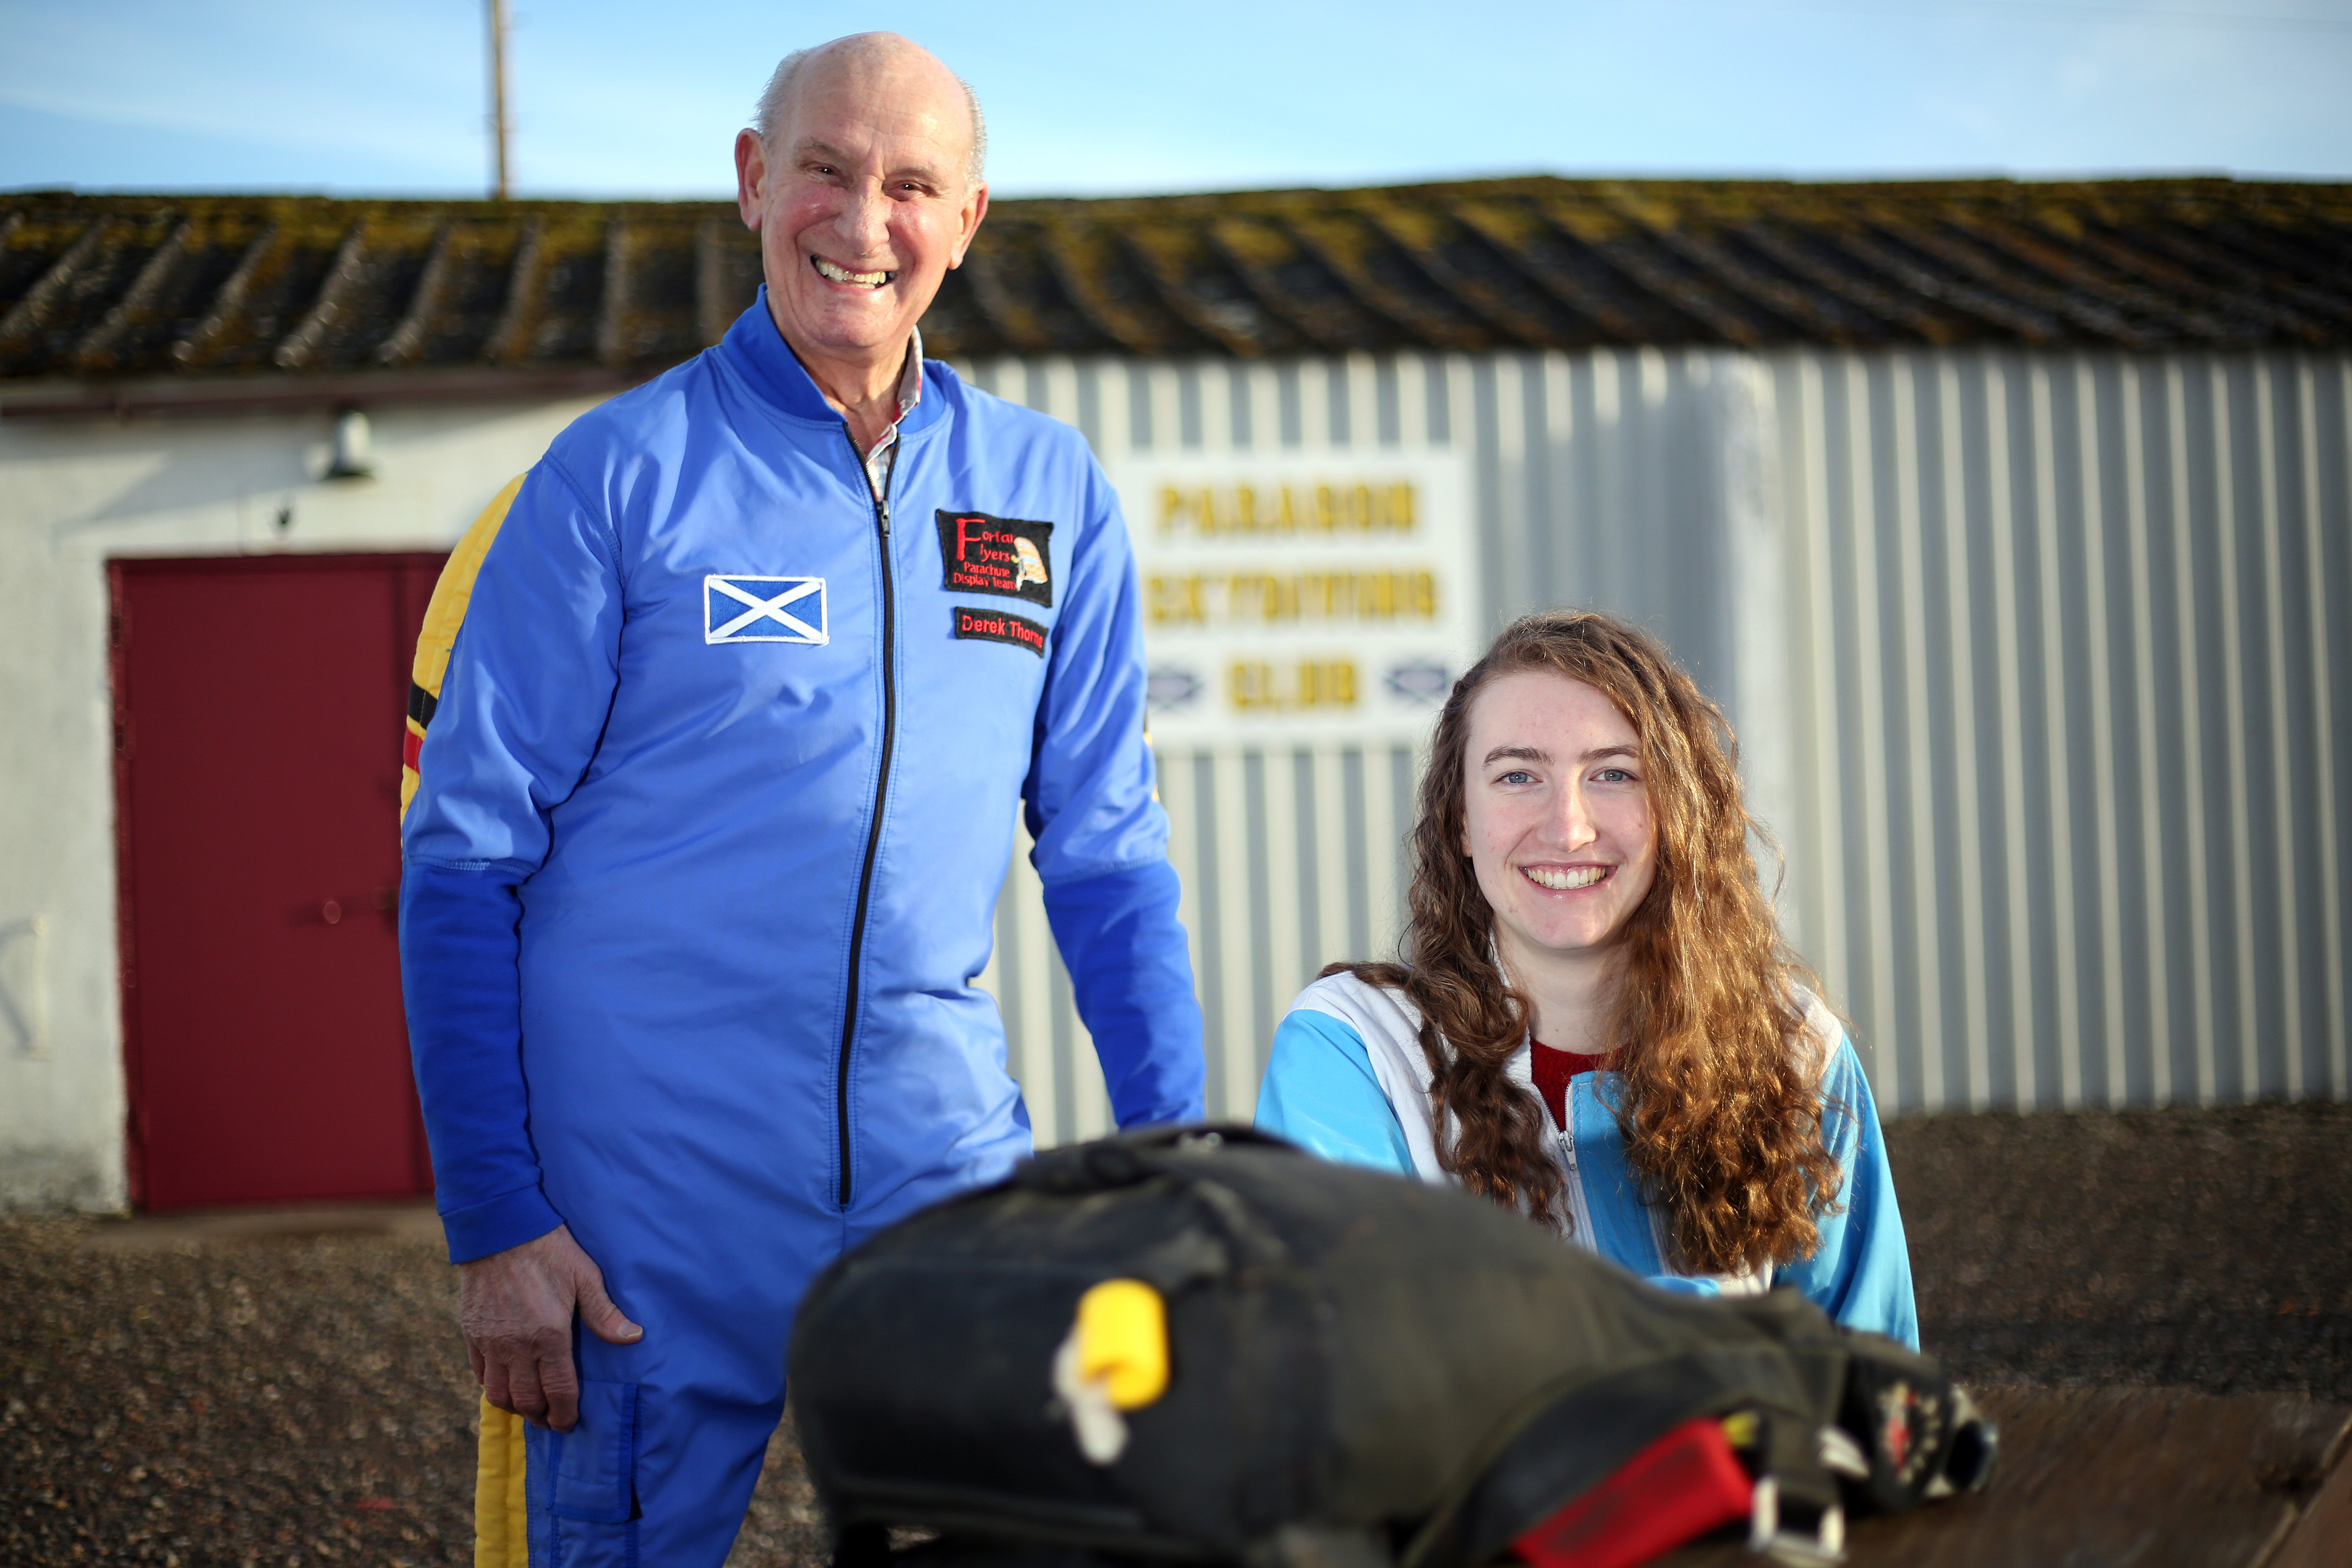 Courier News. Scott Milne story. Scotland's oldest skydiver, Derek Thorne is sponsoring Deborah Garland, who is doing a jump to raise money for the Salvation Army Building Fund next year (March 3rd is proposed date). Pic shows; Derek Thorne giving Deborah Garland some poointers. Thursday, 22nd December, 2017.